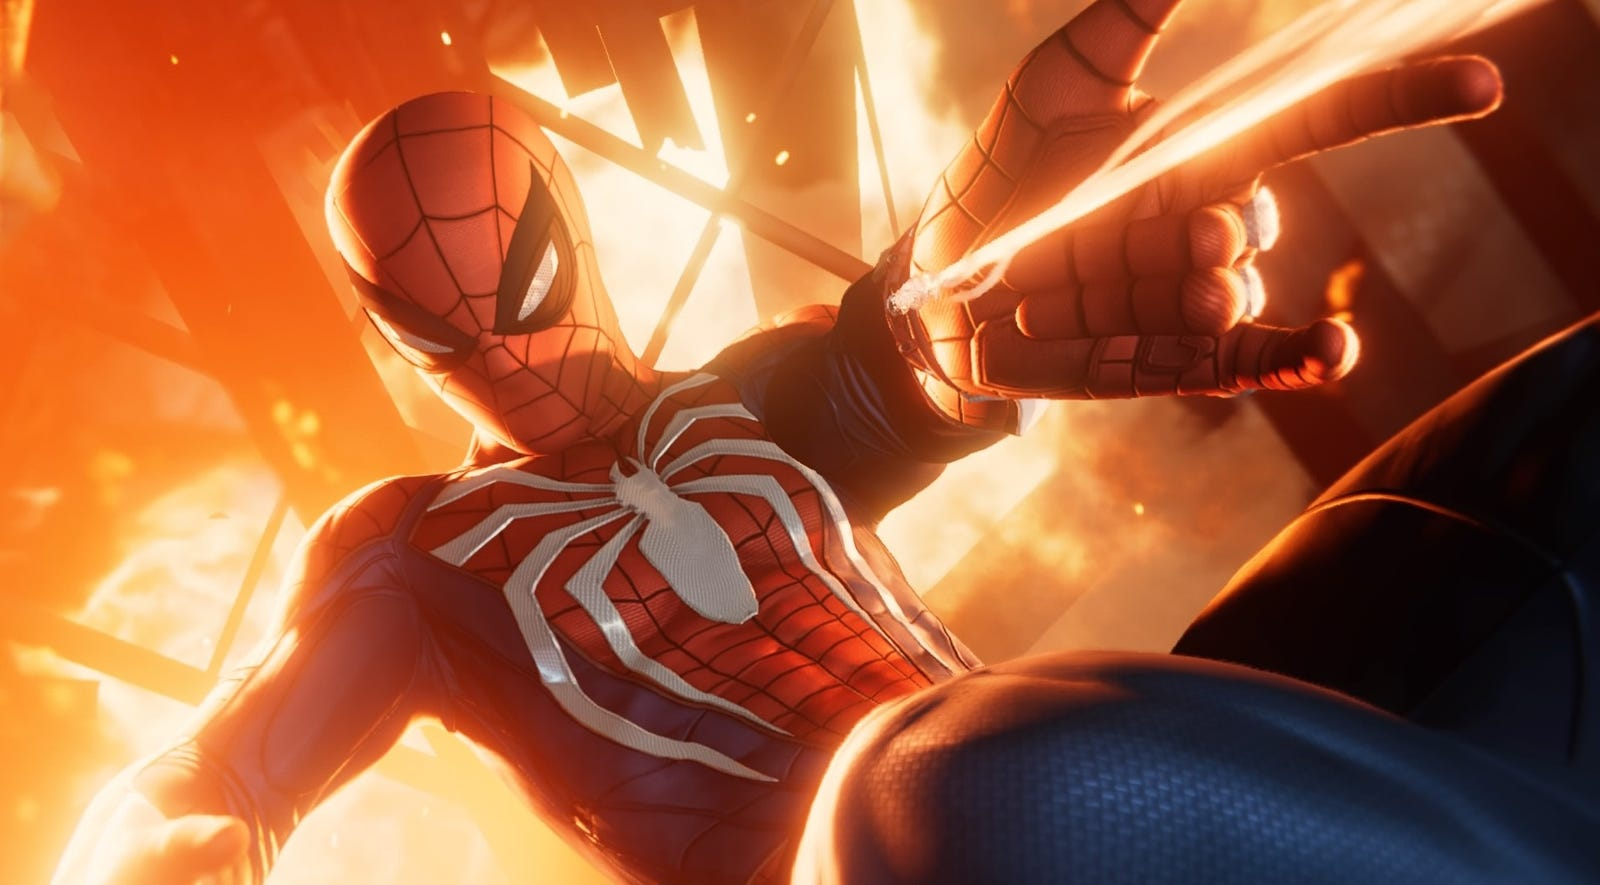 Marvel's Spider-Man For PS4: The Kotaku Review